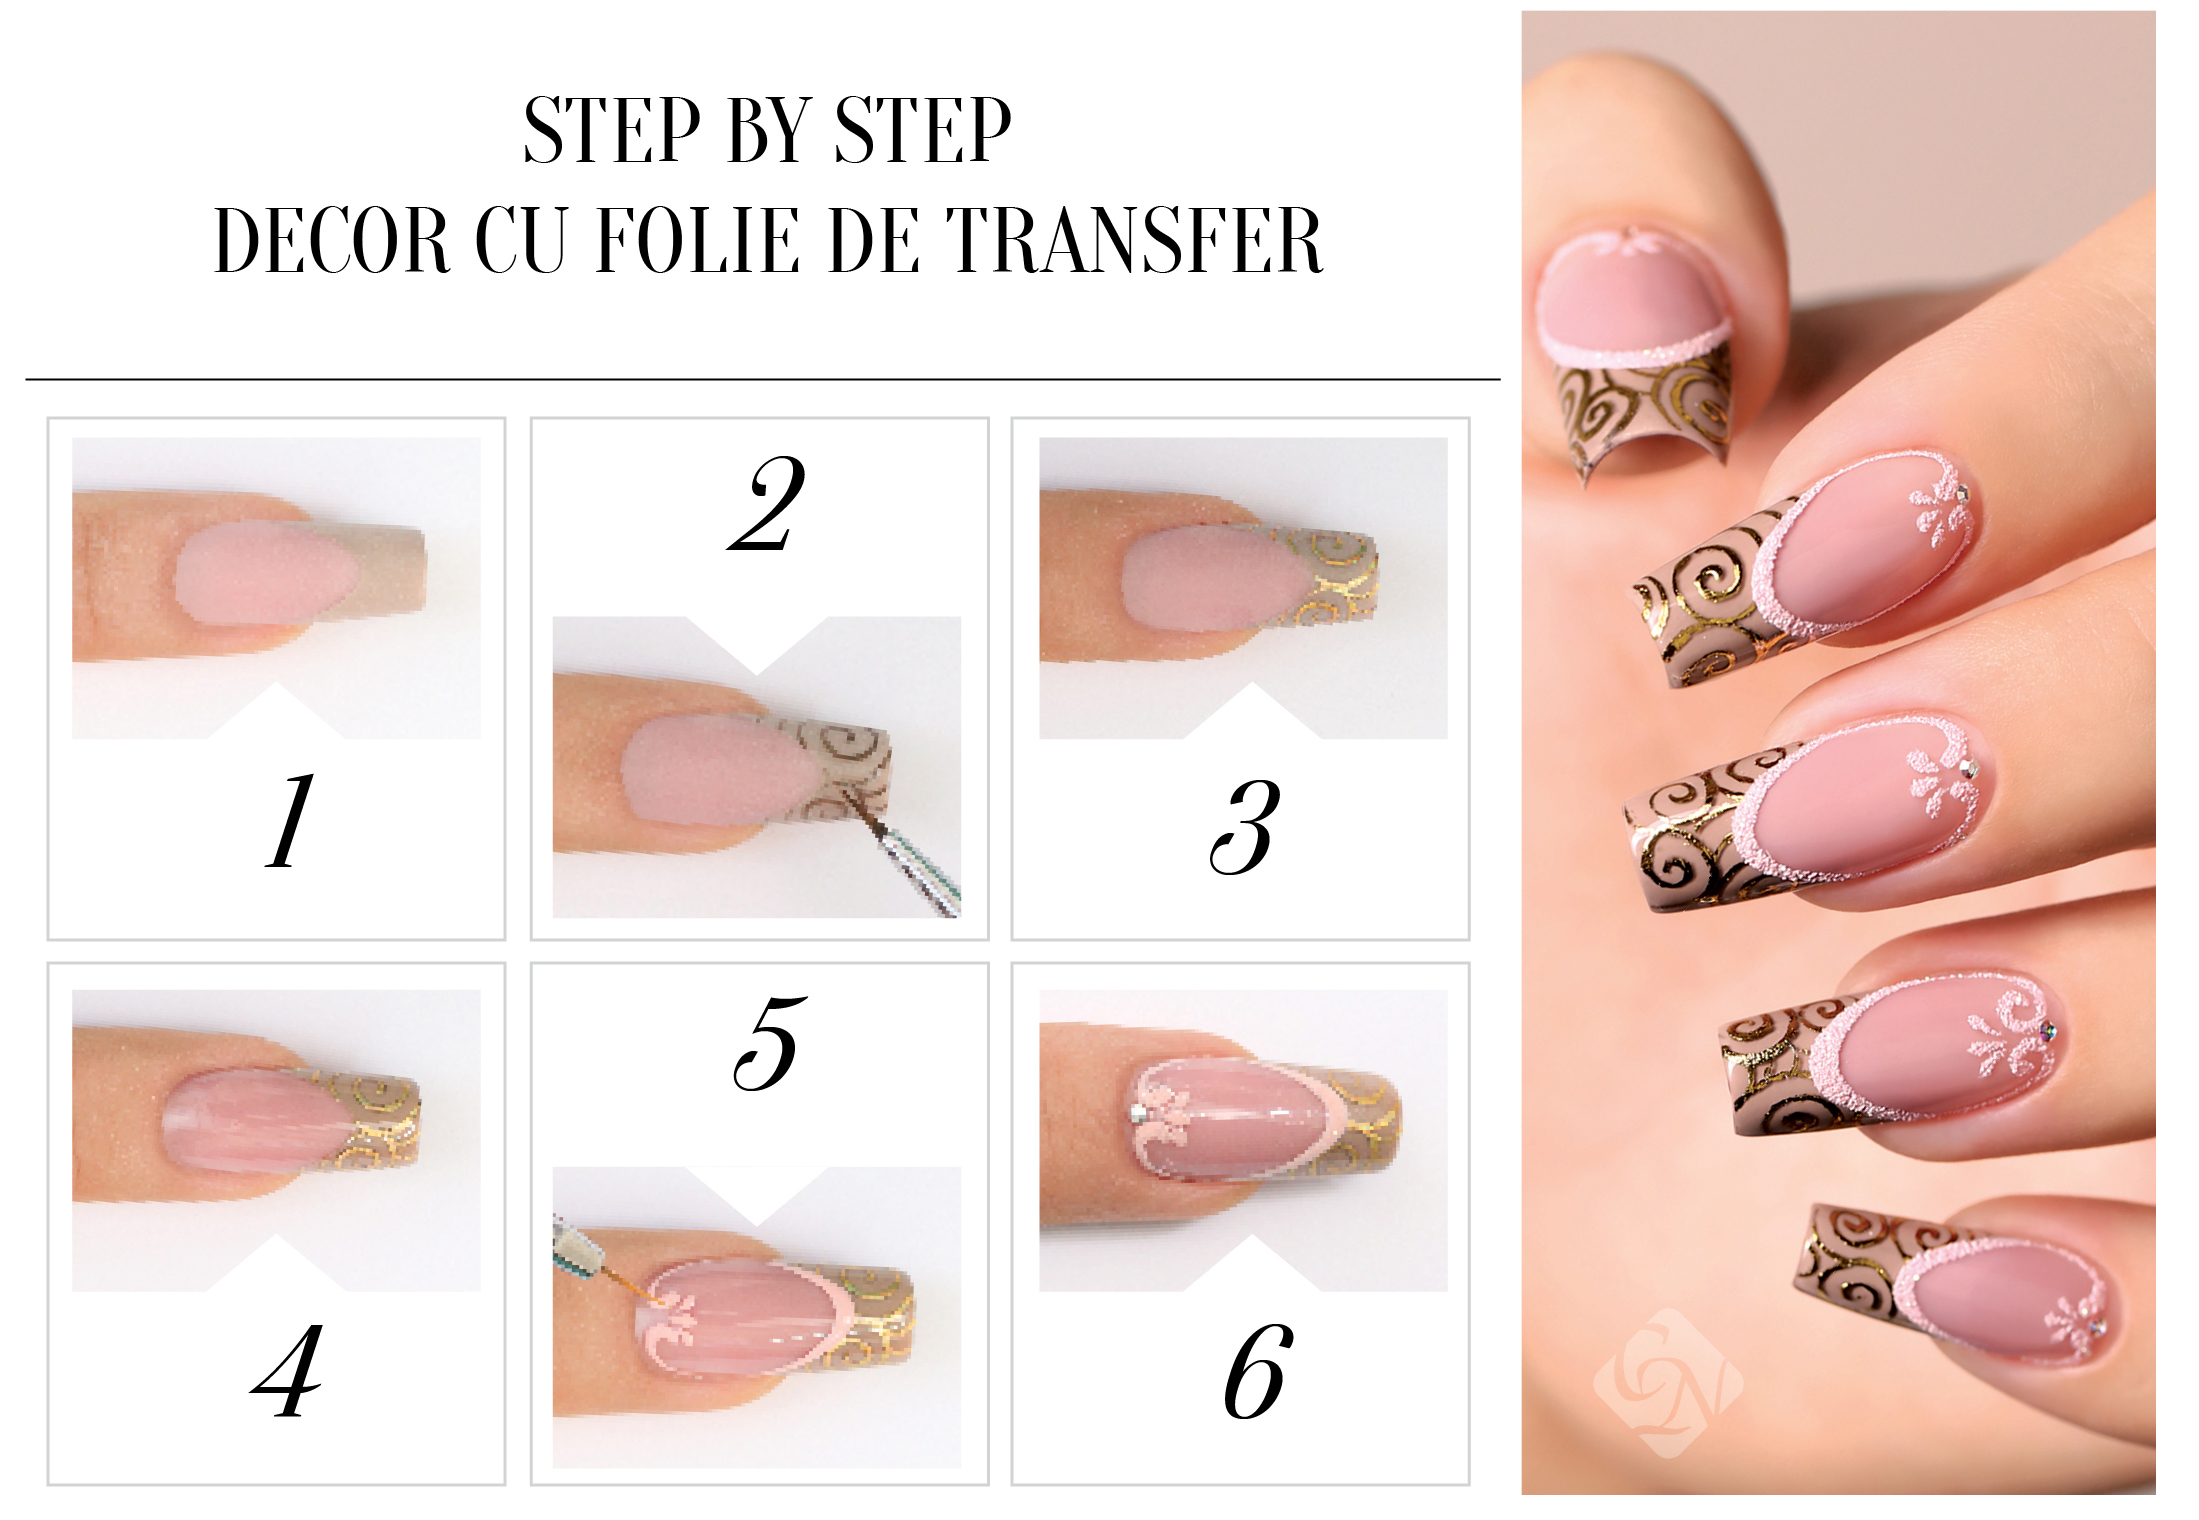 Step by Step Folii de transfer